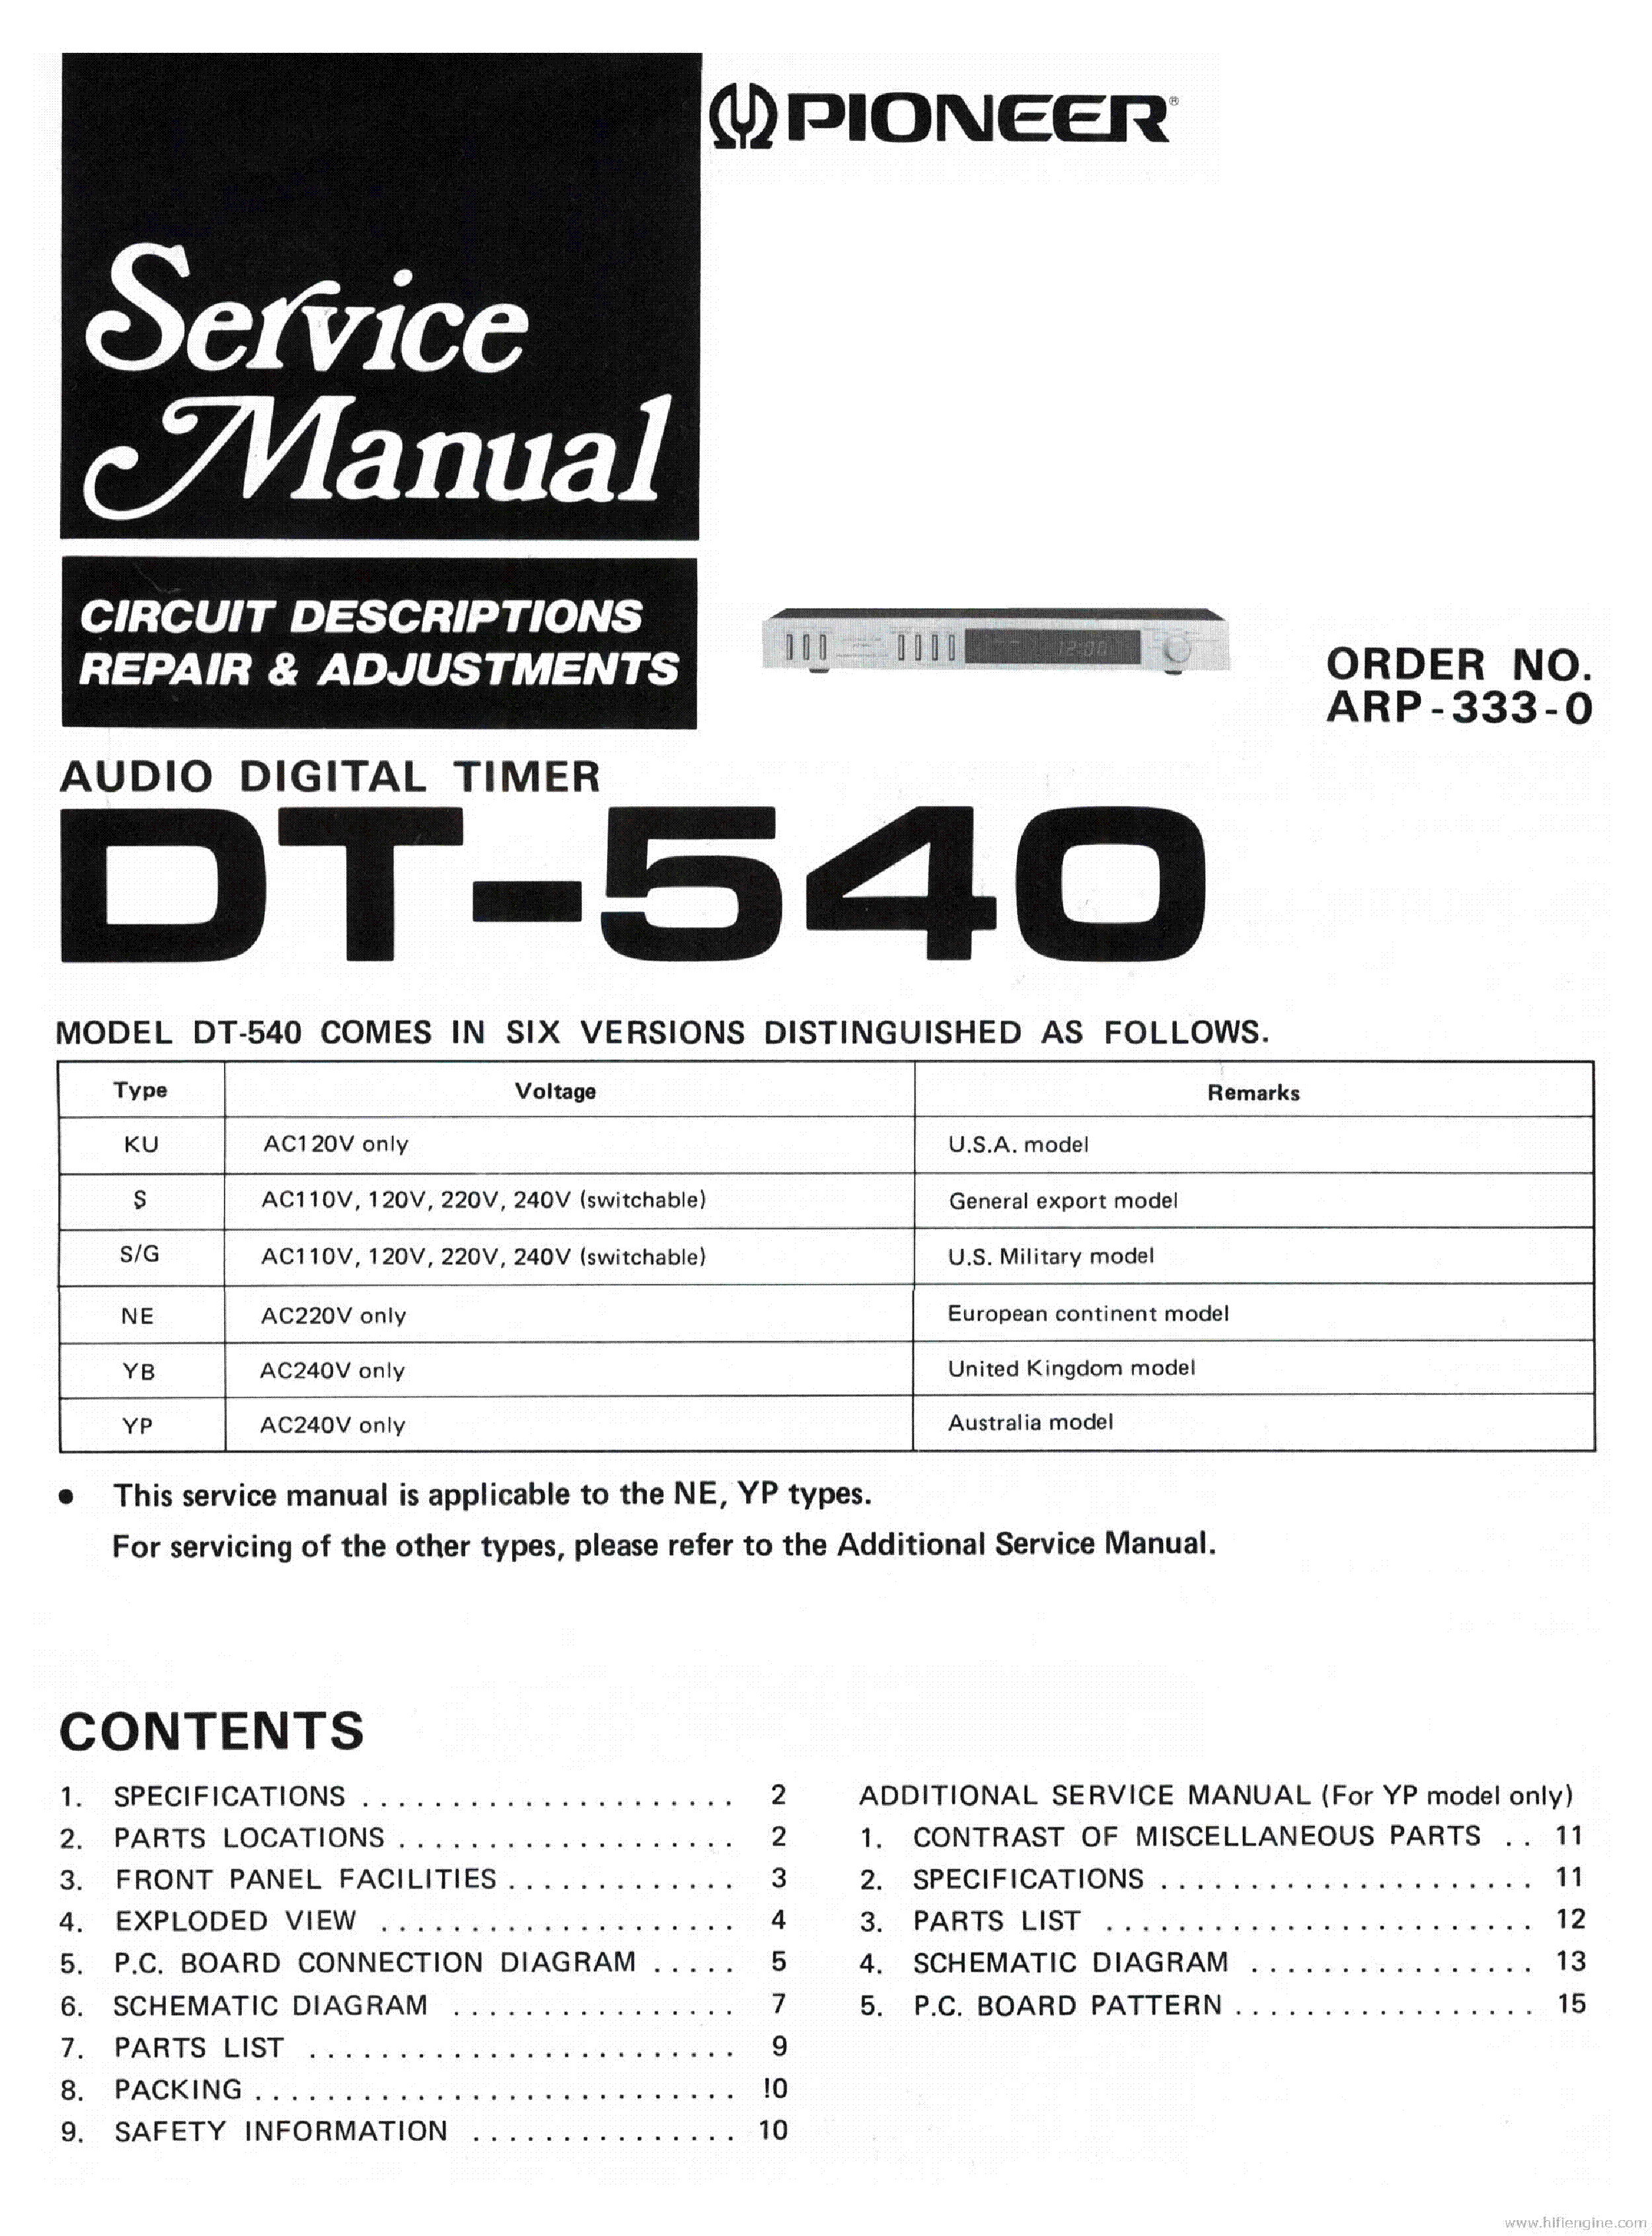 PIONEER C21 Service Manual free download, schematics